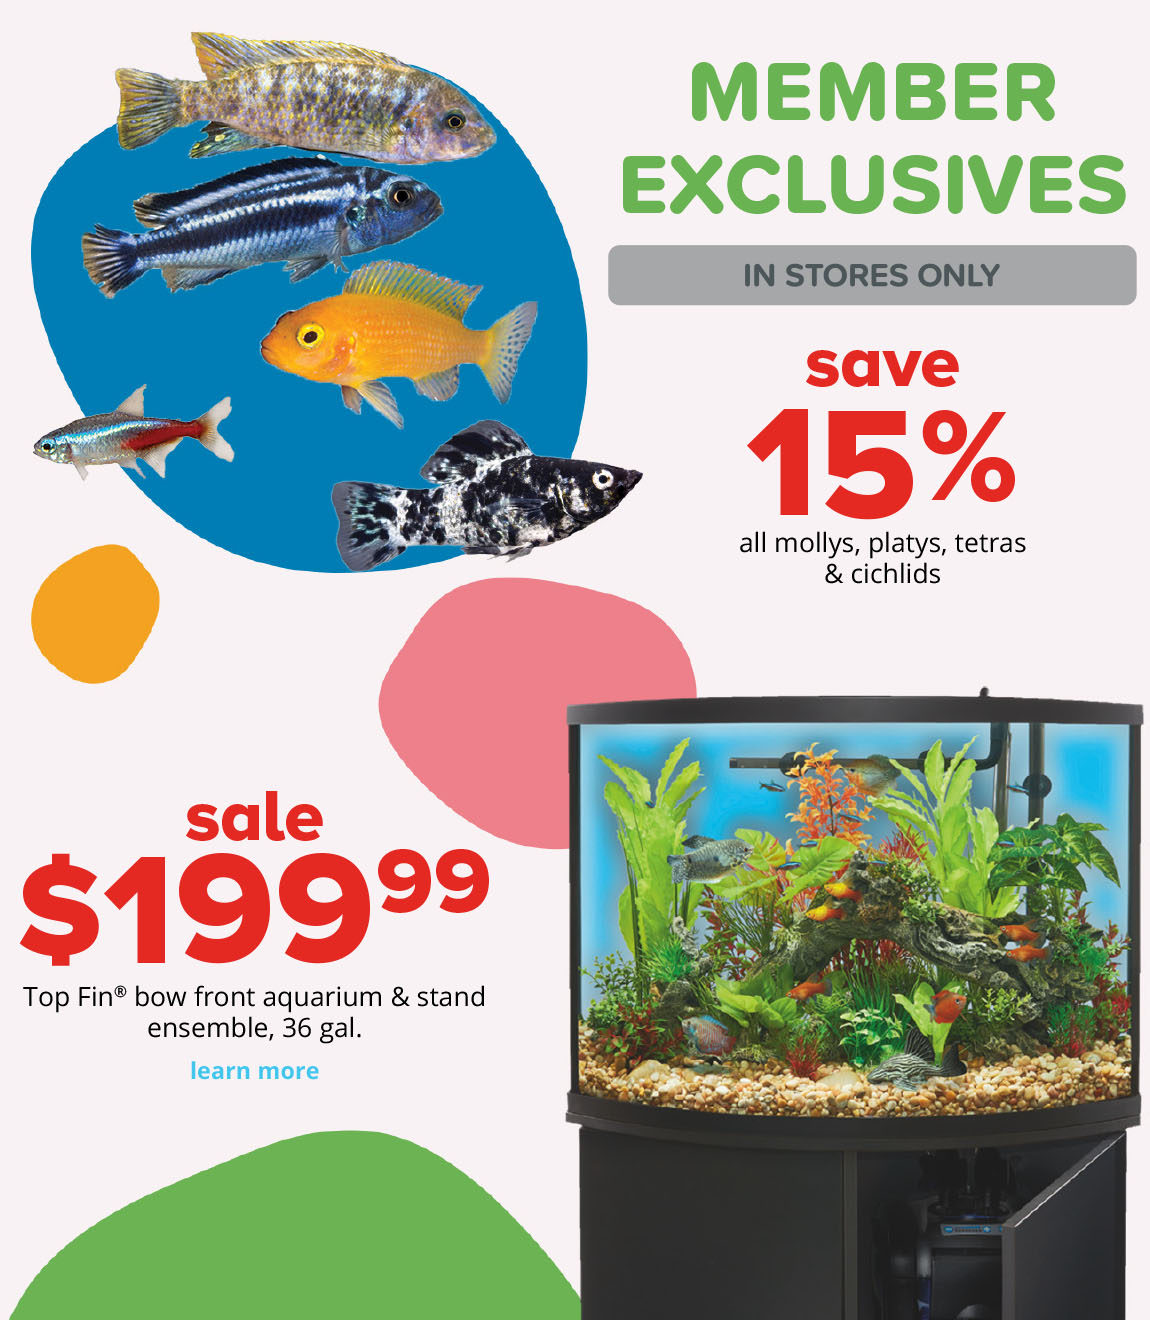 save 15% sale $199.99 all mollys, platys, tetras & cichlids Top Fin® bowfront aquarium & stand ensemble, 36 gal.